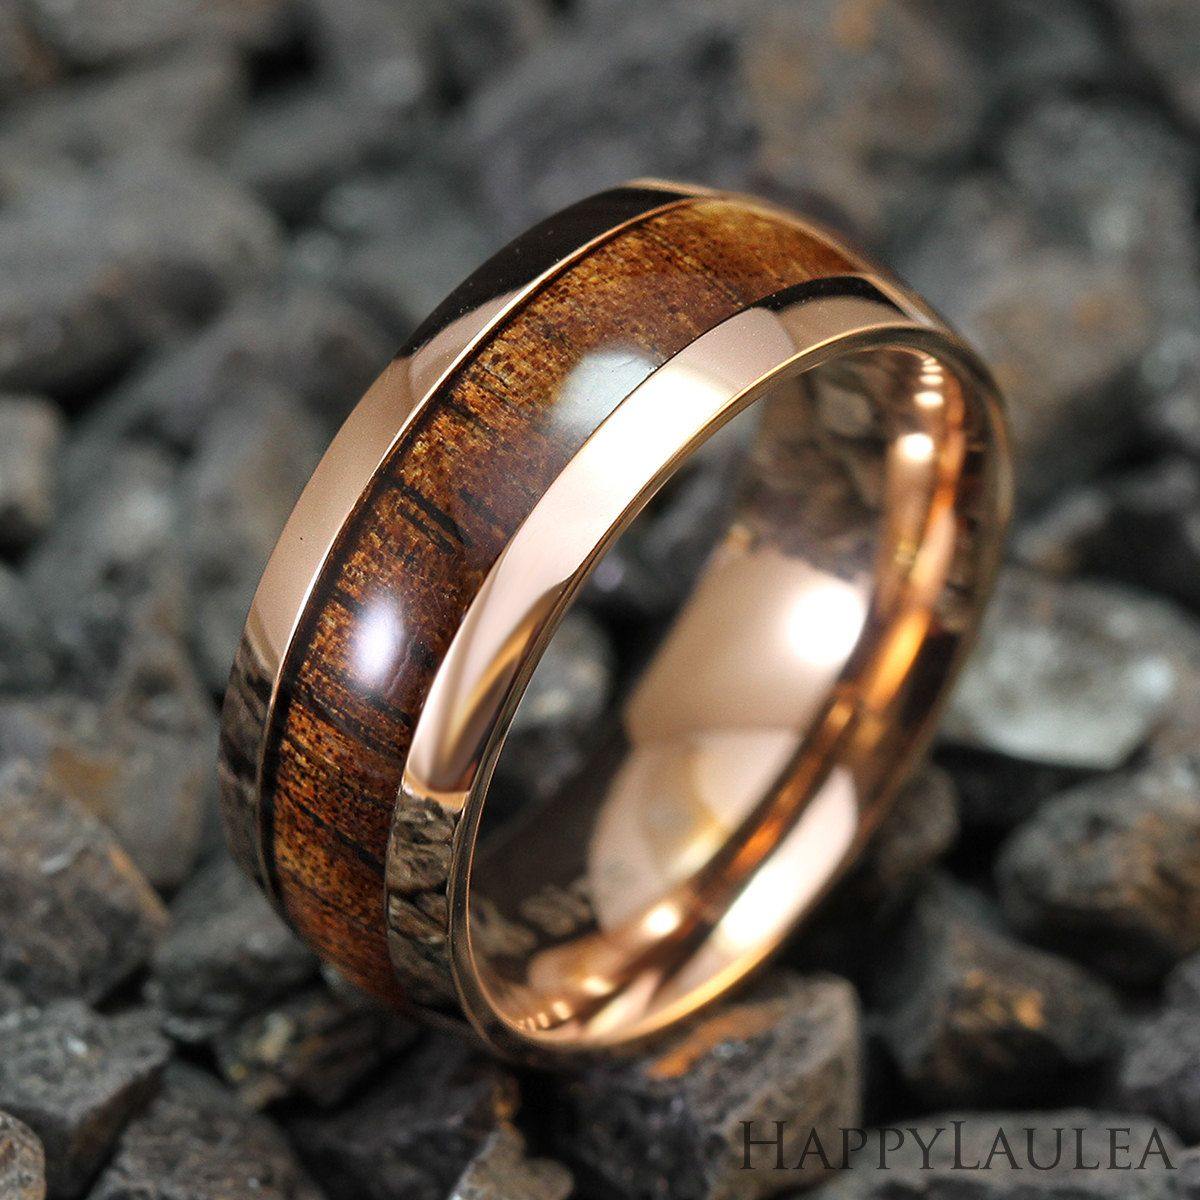 Stainless Steel Ring with Koa Wood Inlay 8mm width by